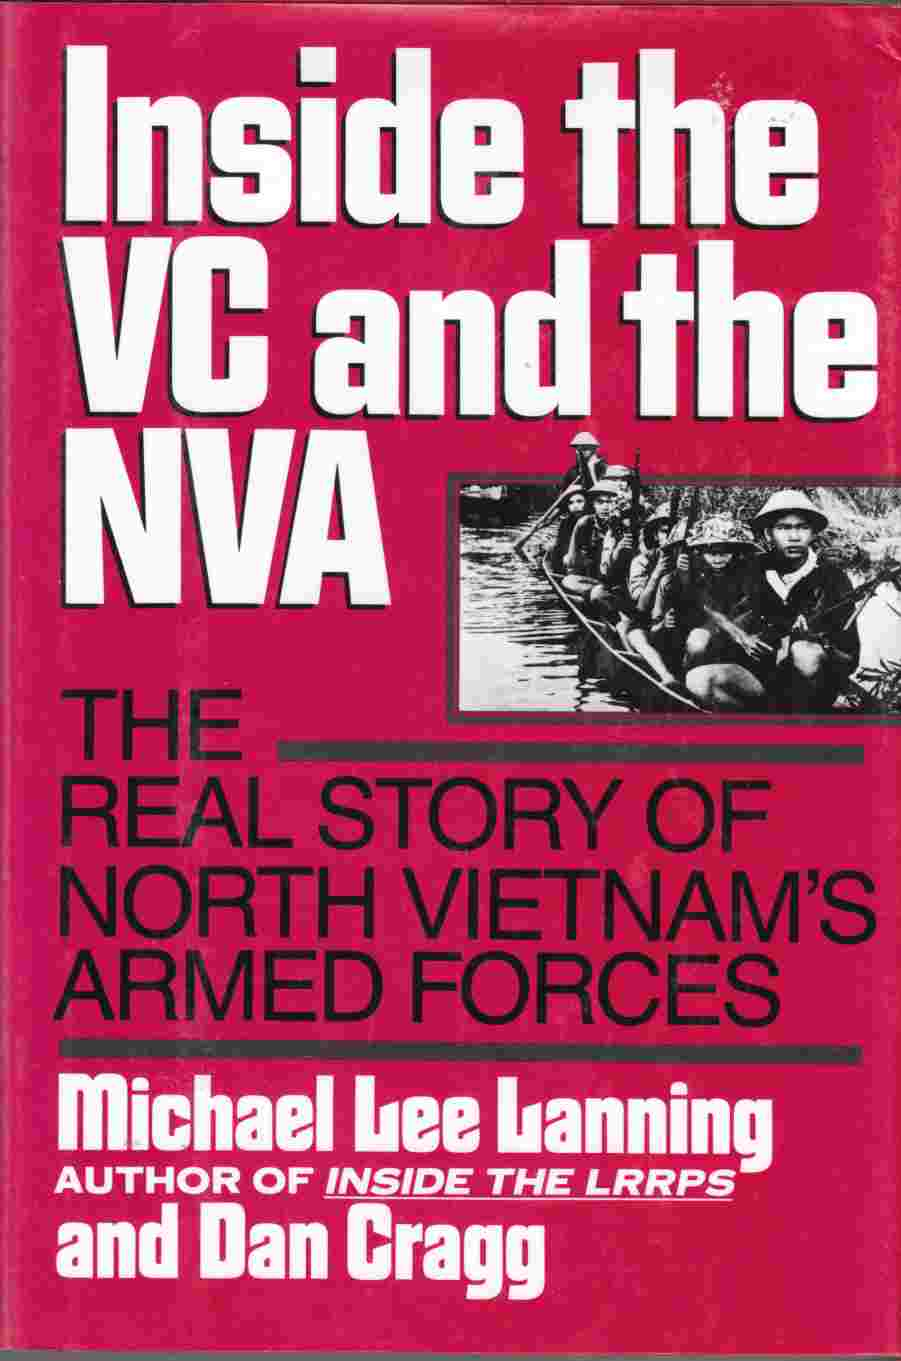 Image for Inside the VC and NVA The Real Story of North Vietnam's Armed Forces